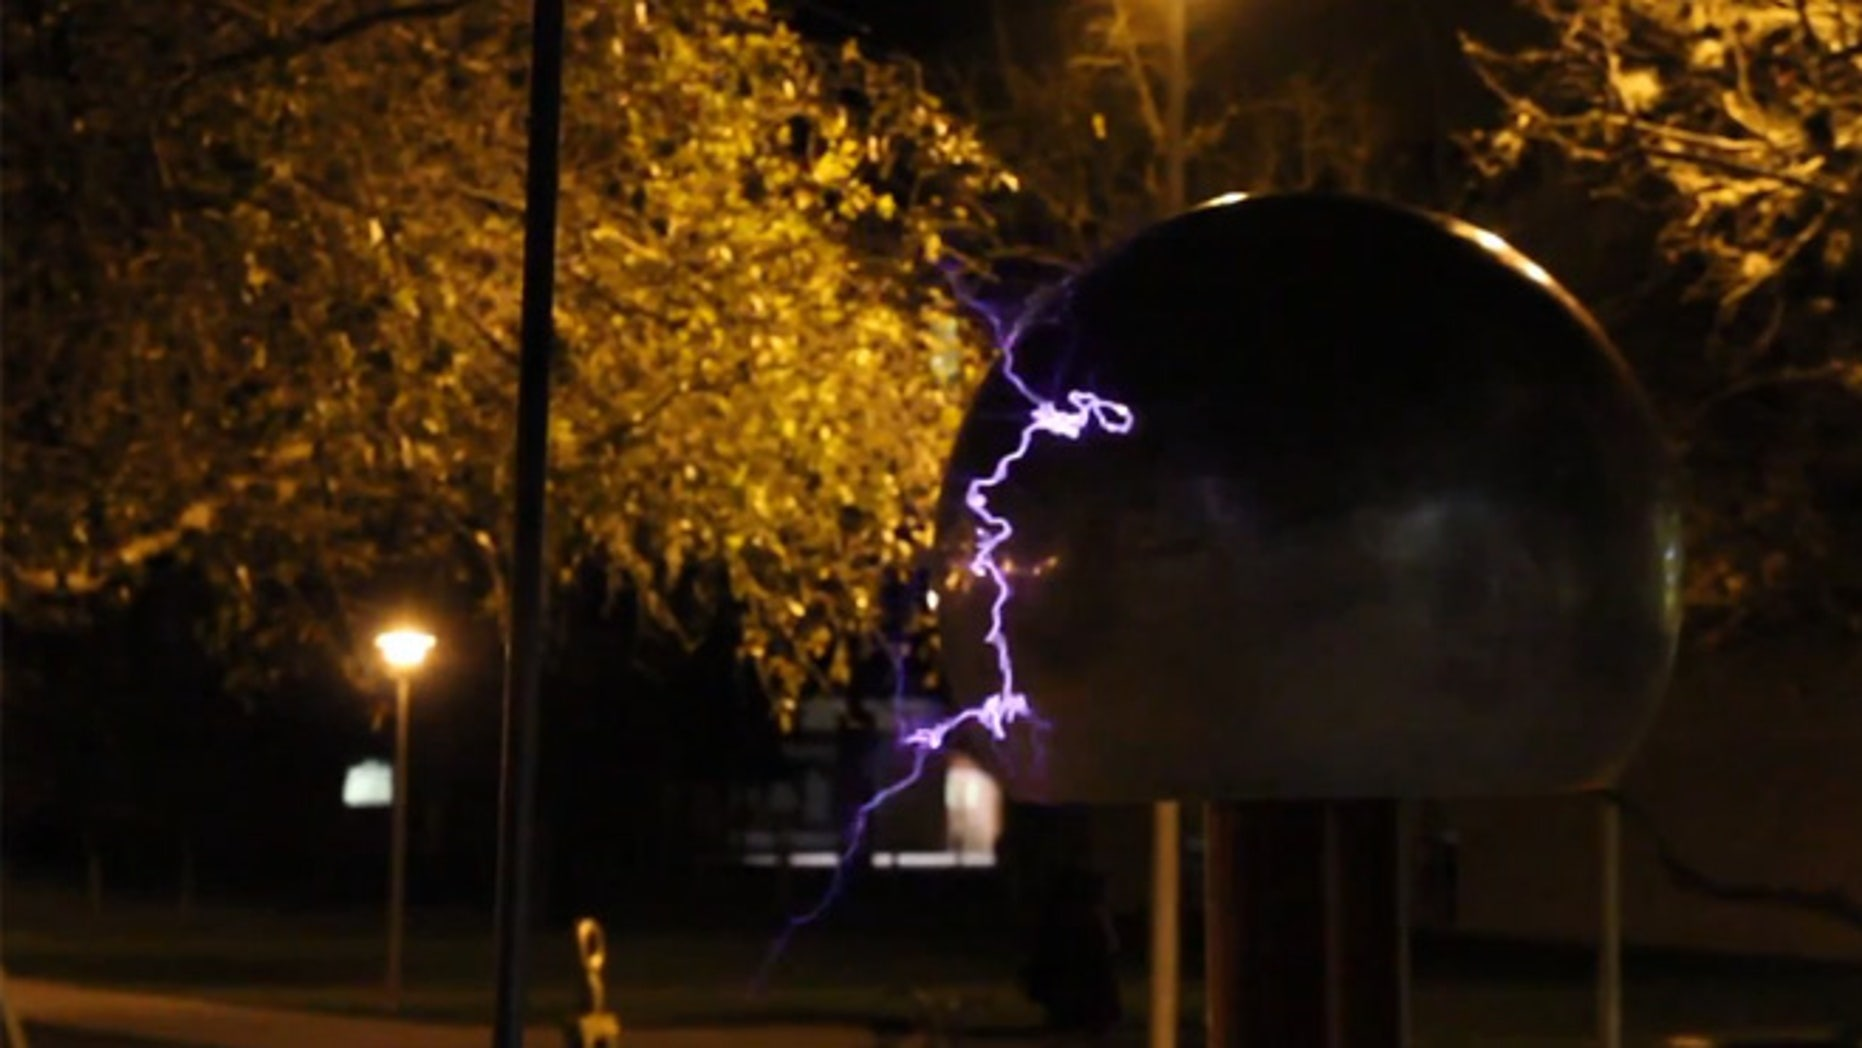 The tesla coil can produce an alternating current and shoots out 15 foot sparks of electricity.